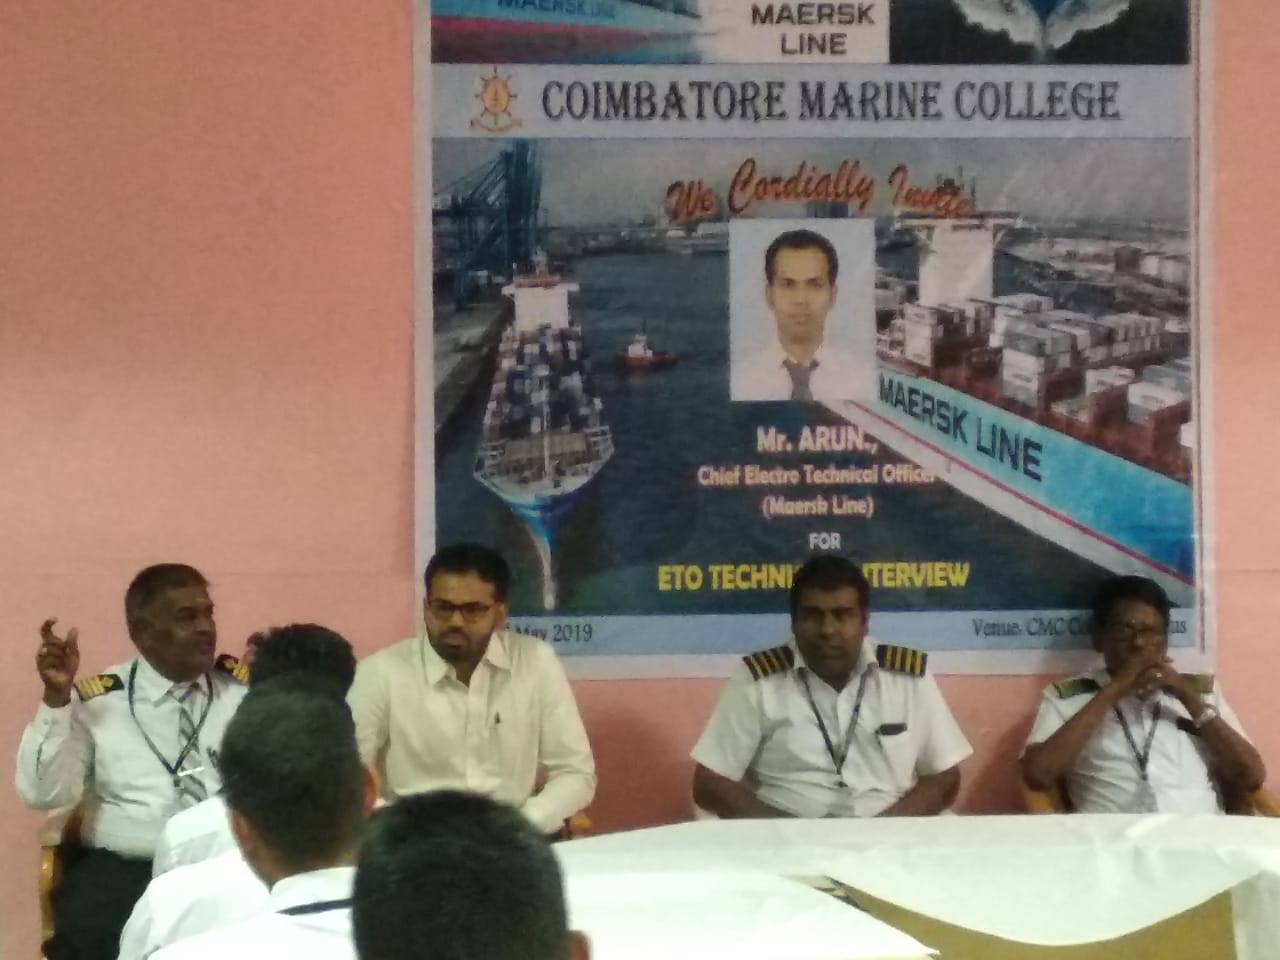 Technical Interview (MAERSK LINE) for ETO cadets at Coimbatore Marine College